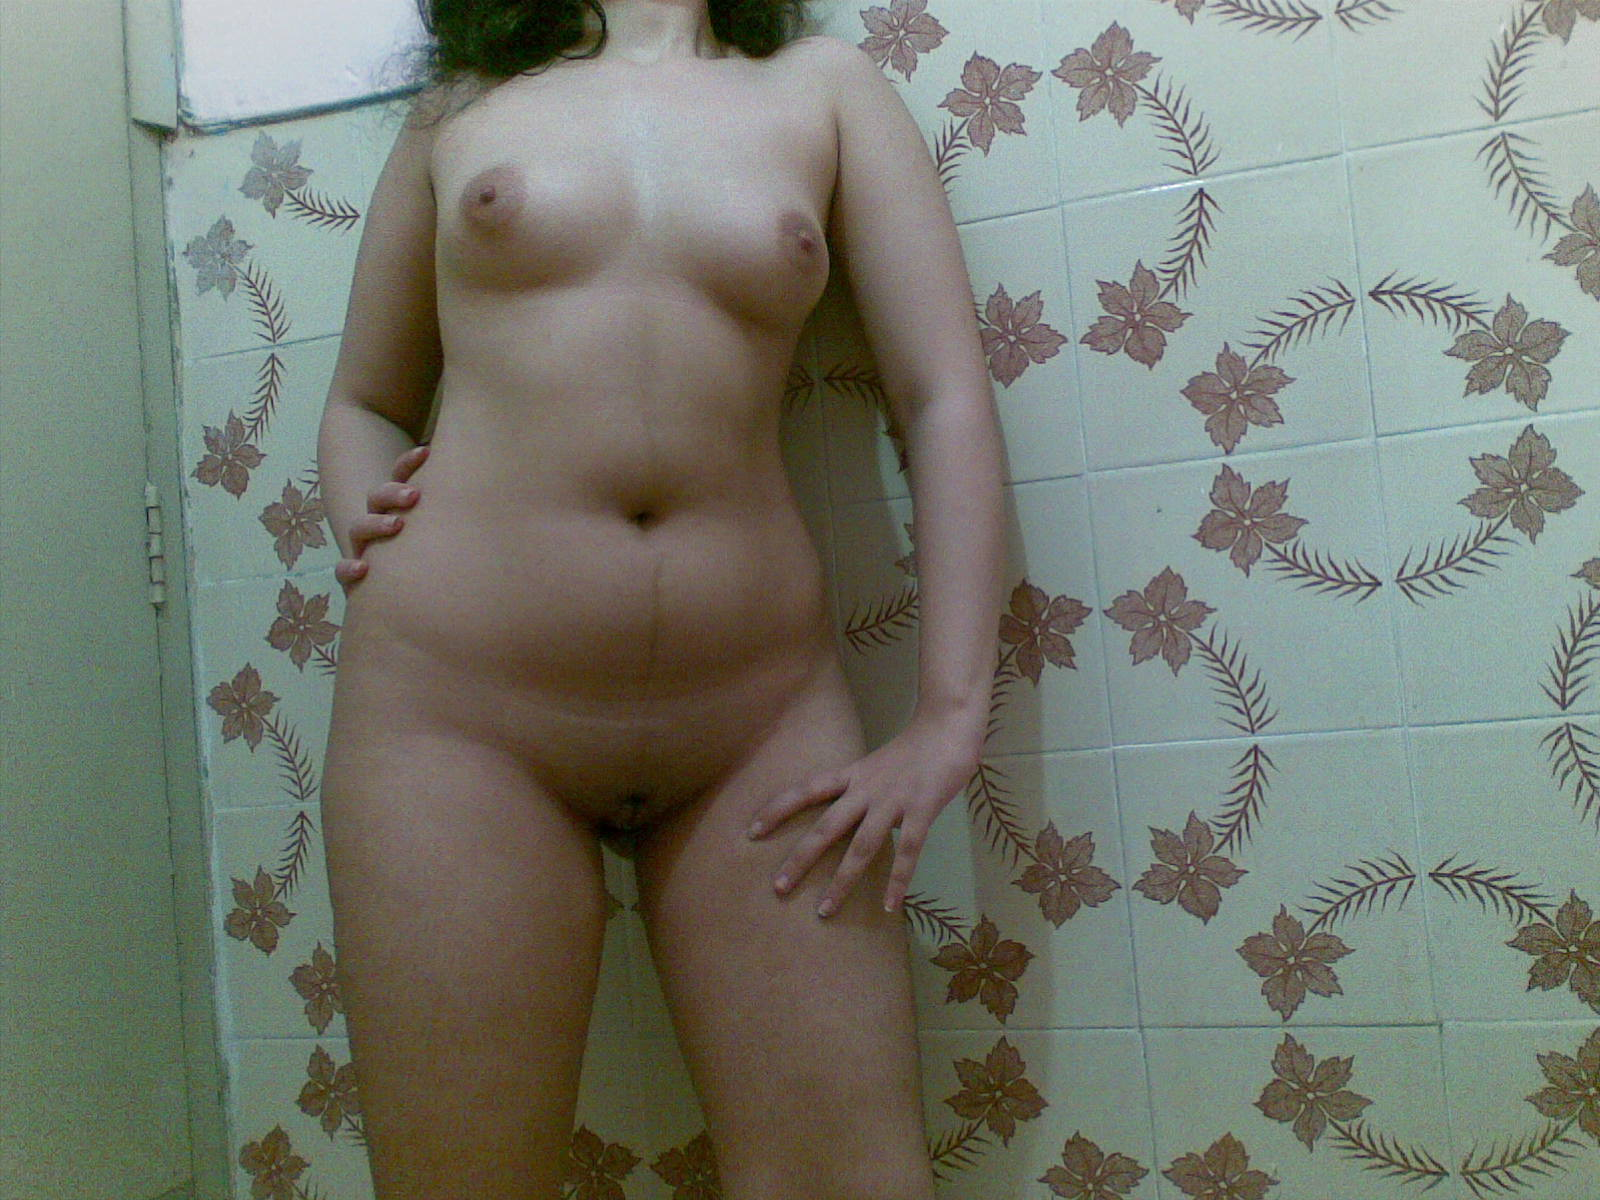 self submitted nude photos of women jpg 853x1280